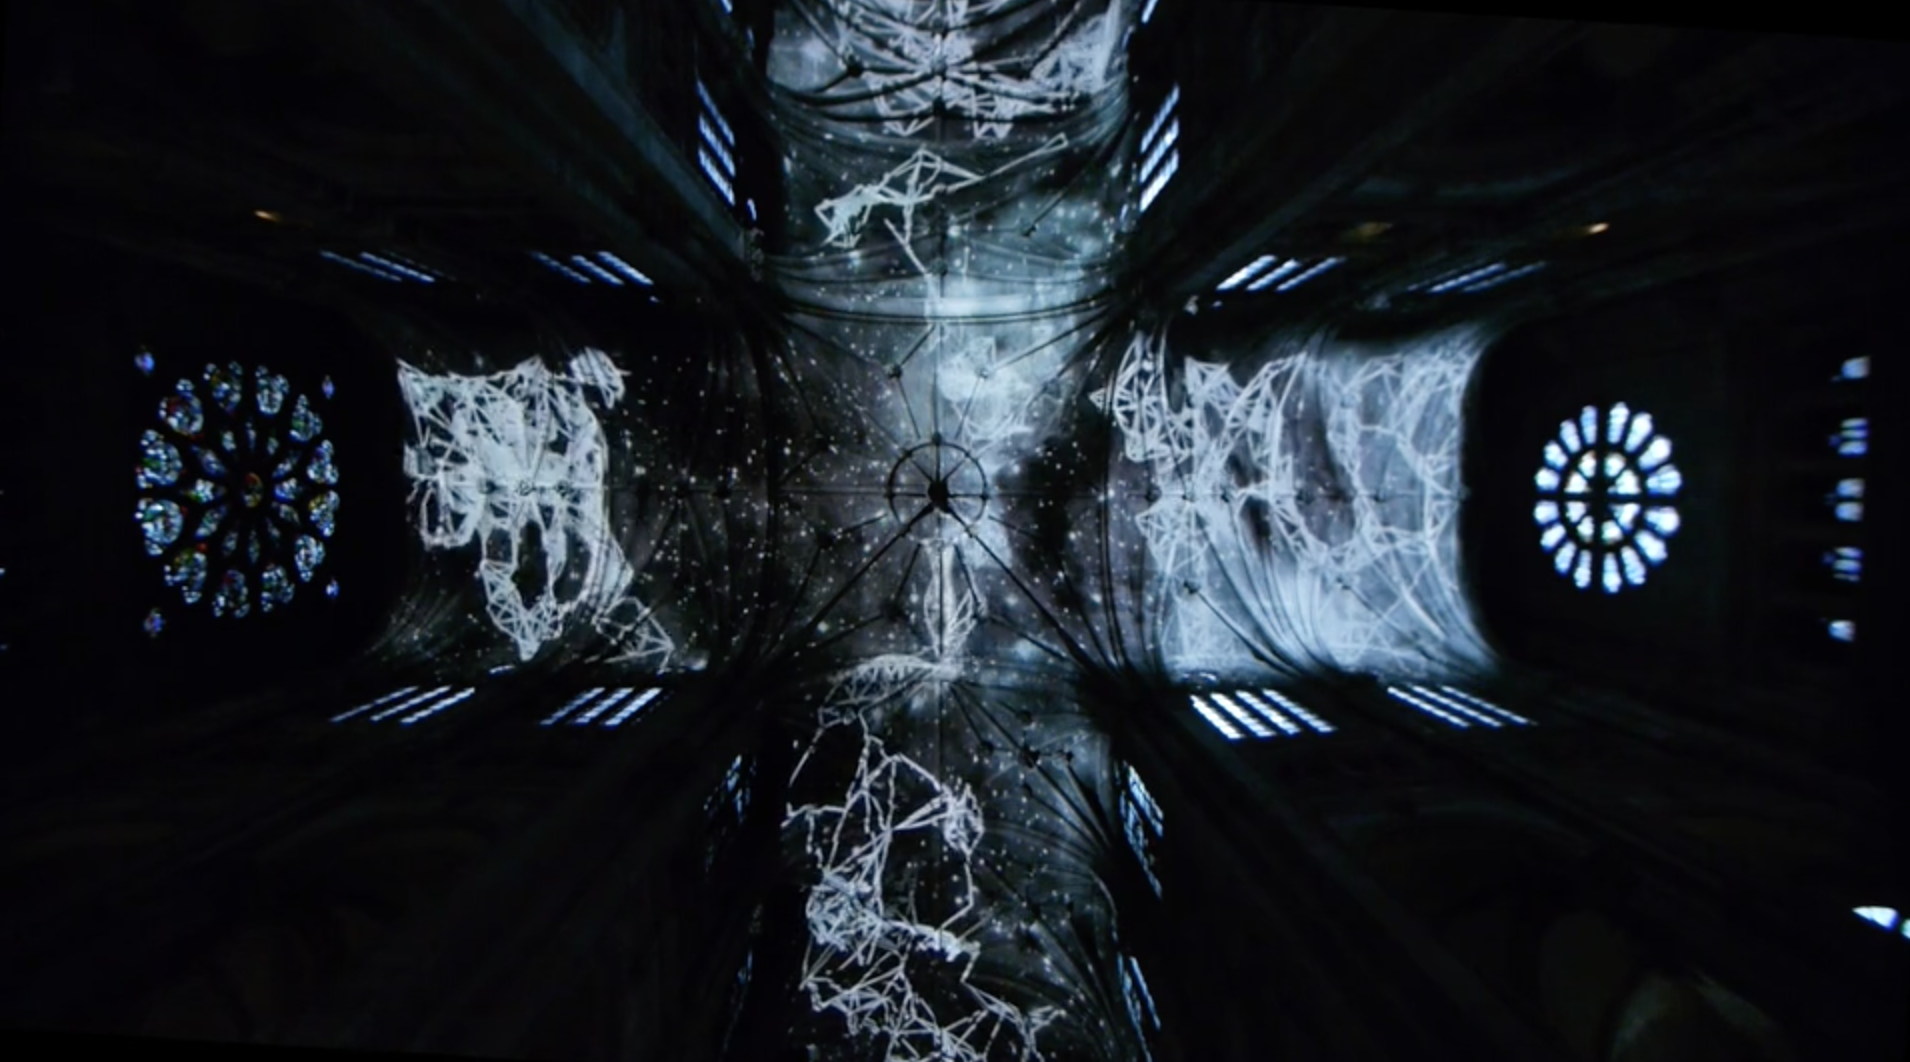 projection mapped sky miguel projectileobjects